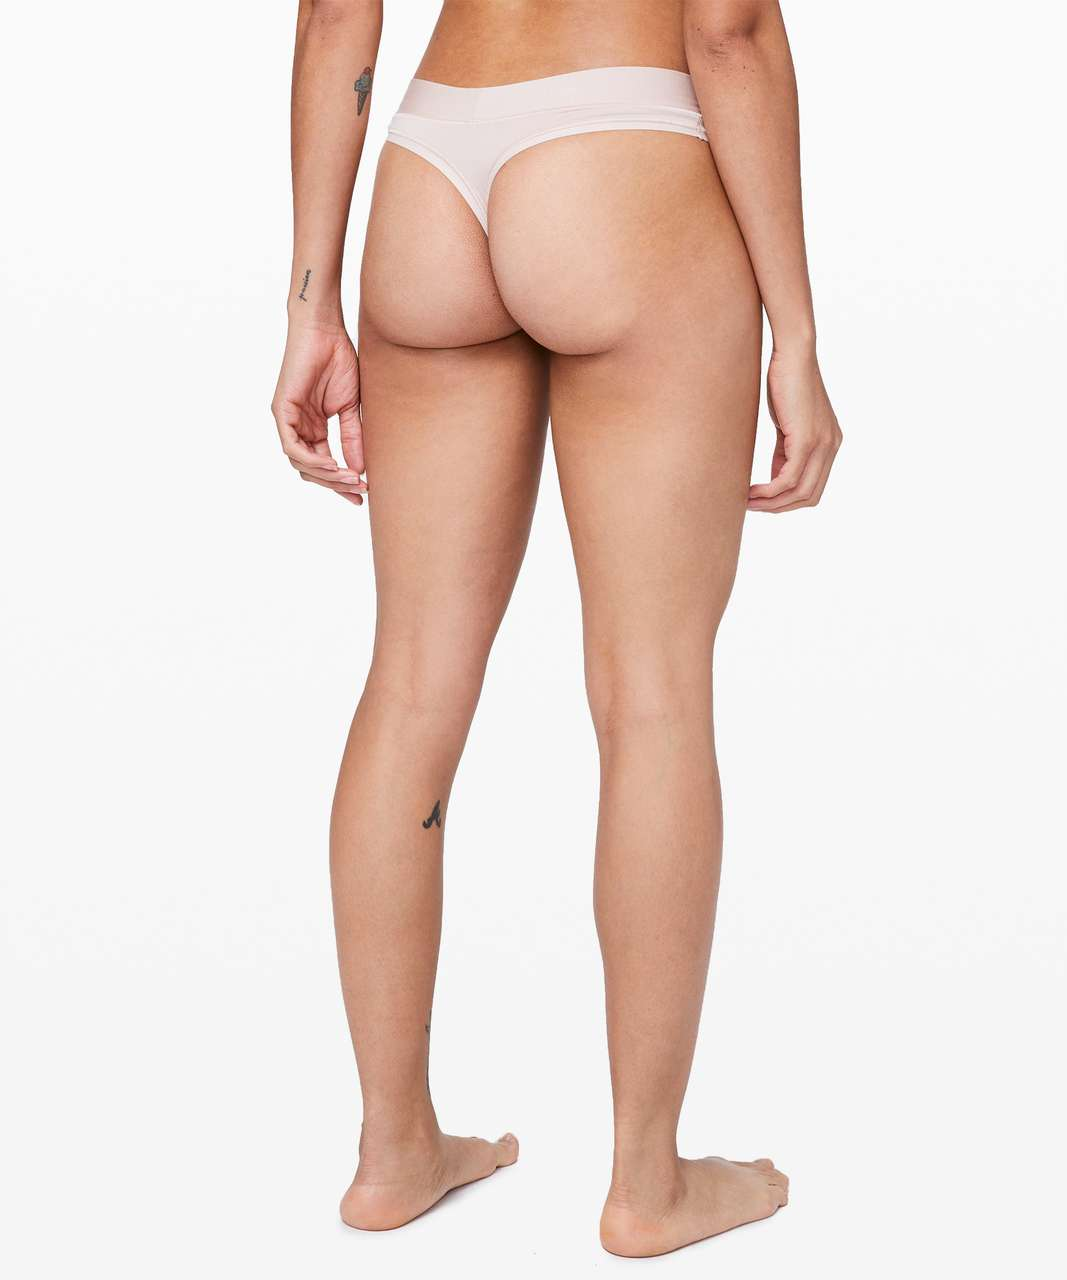 Lululemon Mula Bandhawear Thong *3 Pack - Black / Misty Shell / Night Diver